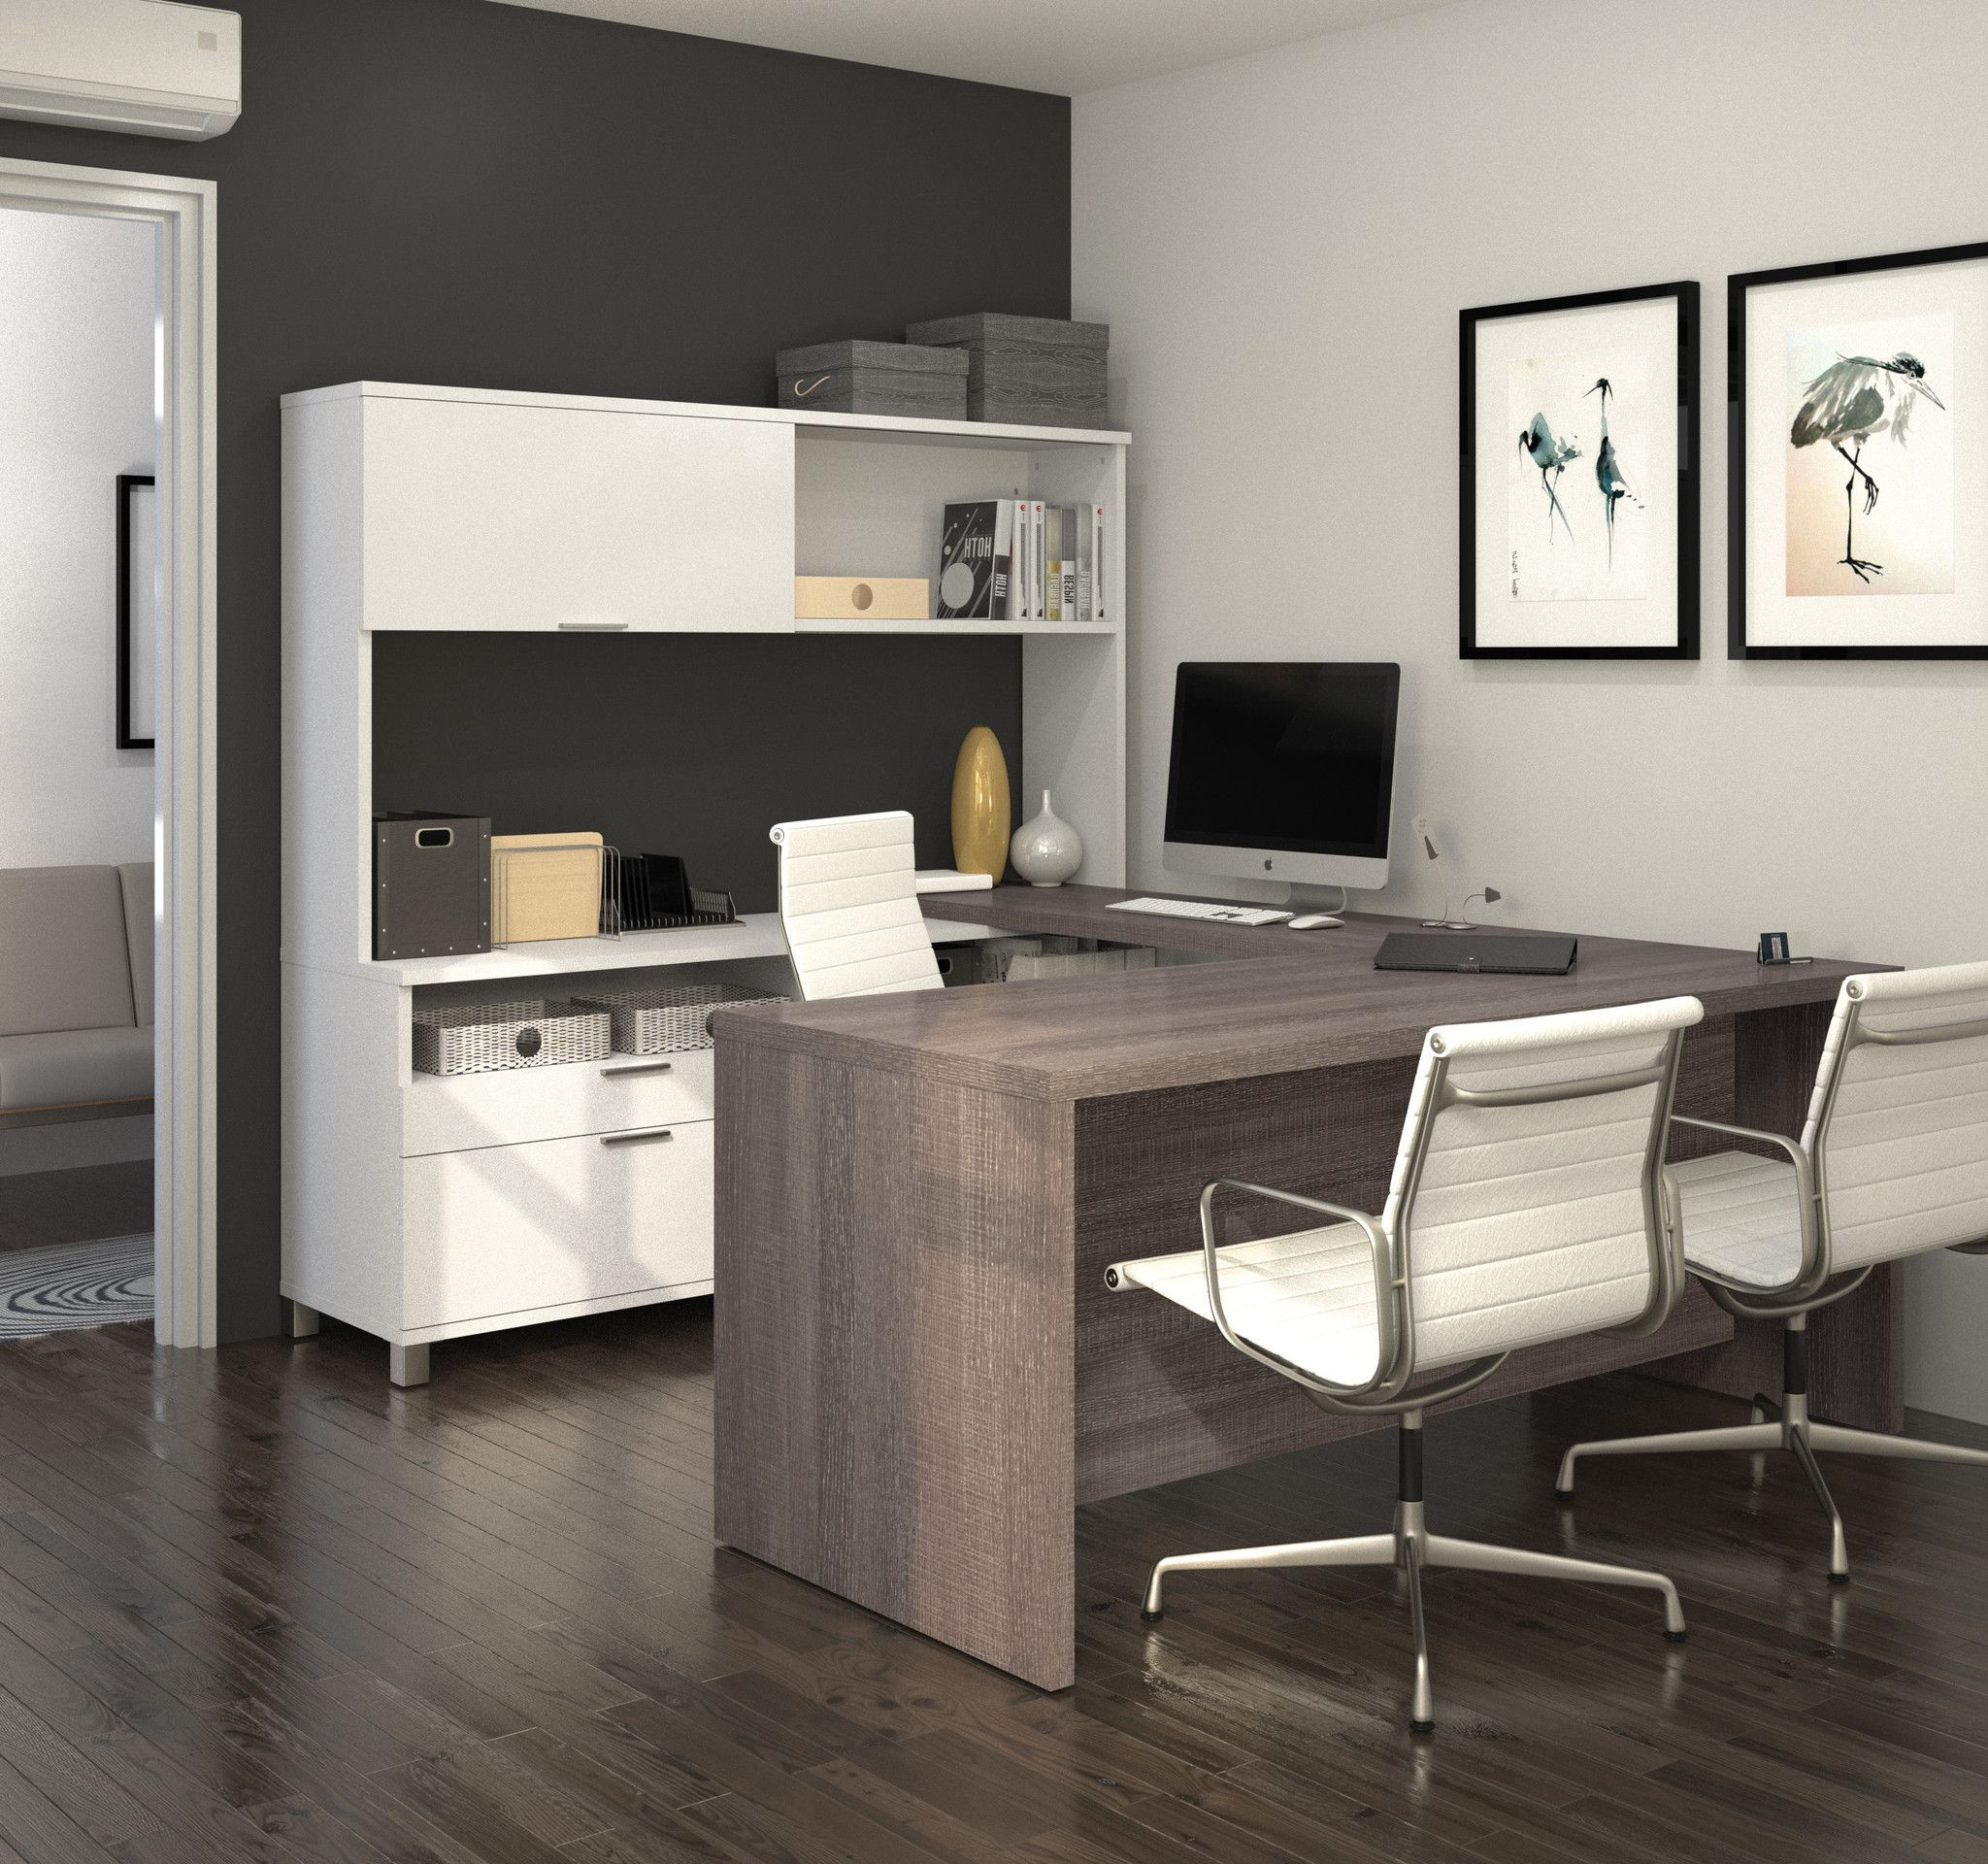 for kima new donation desks white office contemporary to our within icarus modern com furniture thanks desk onsingularity regarding